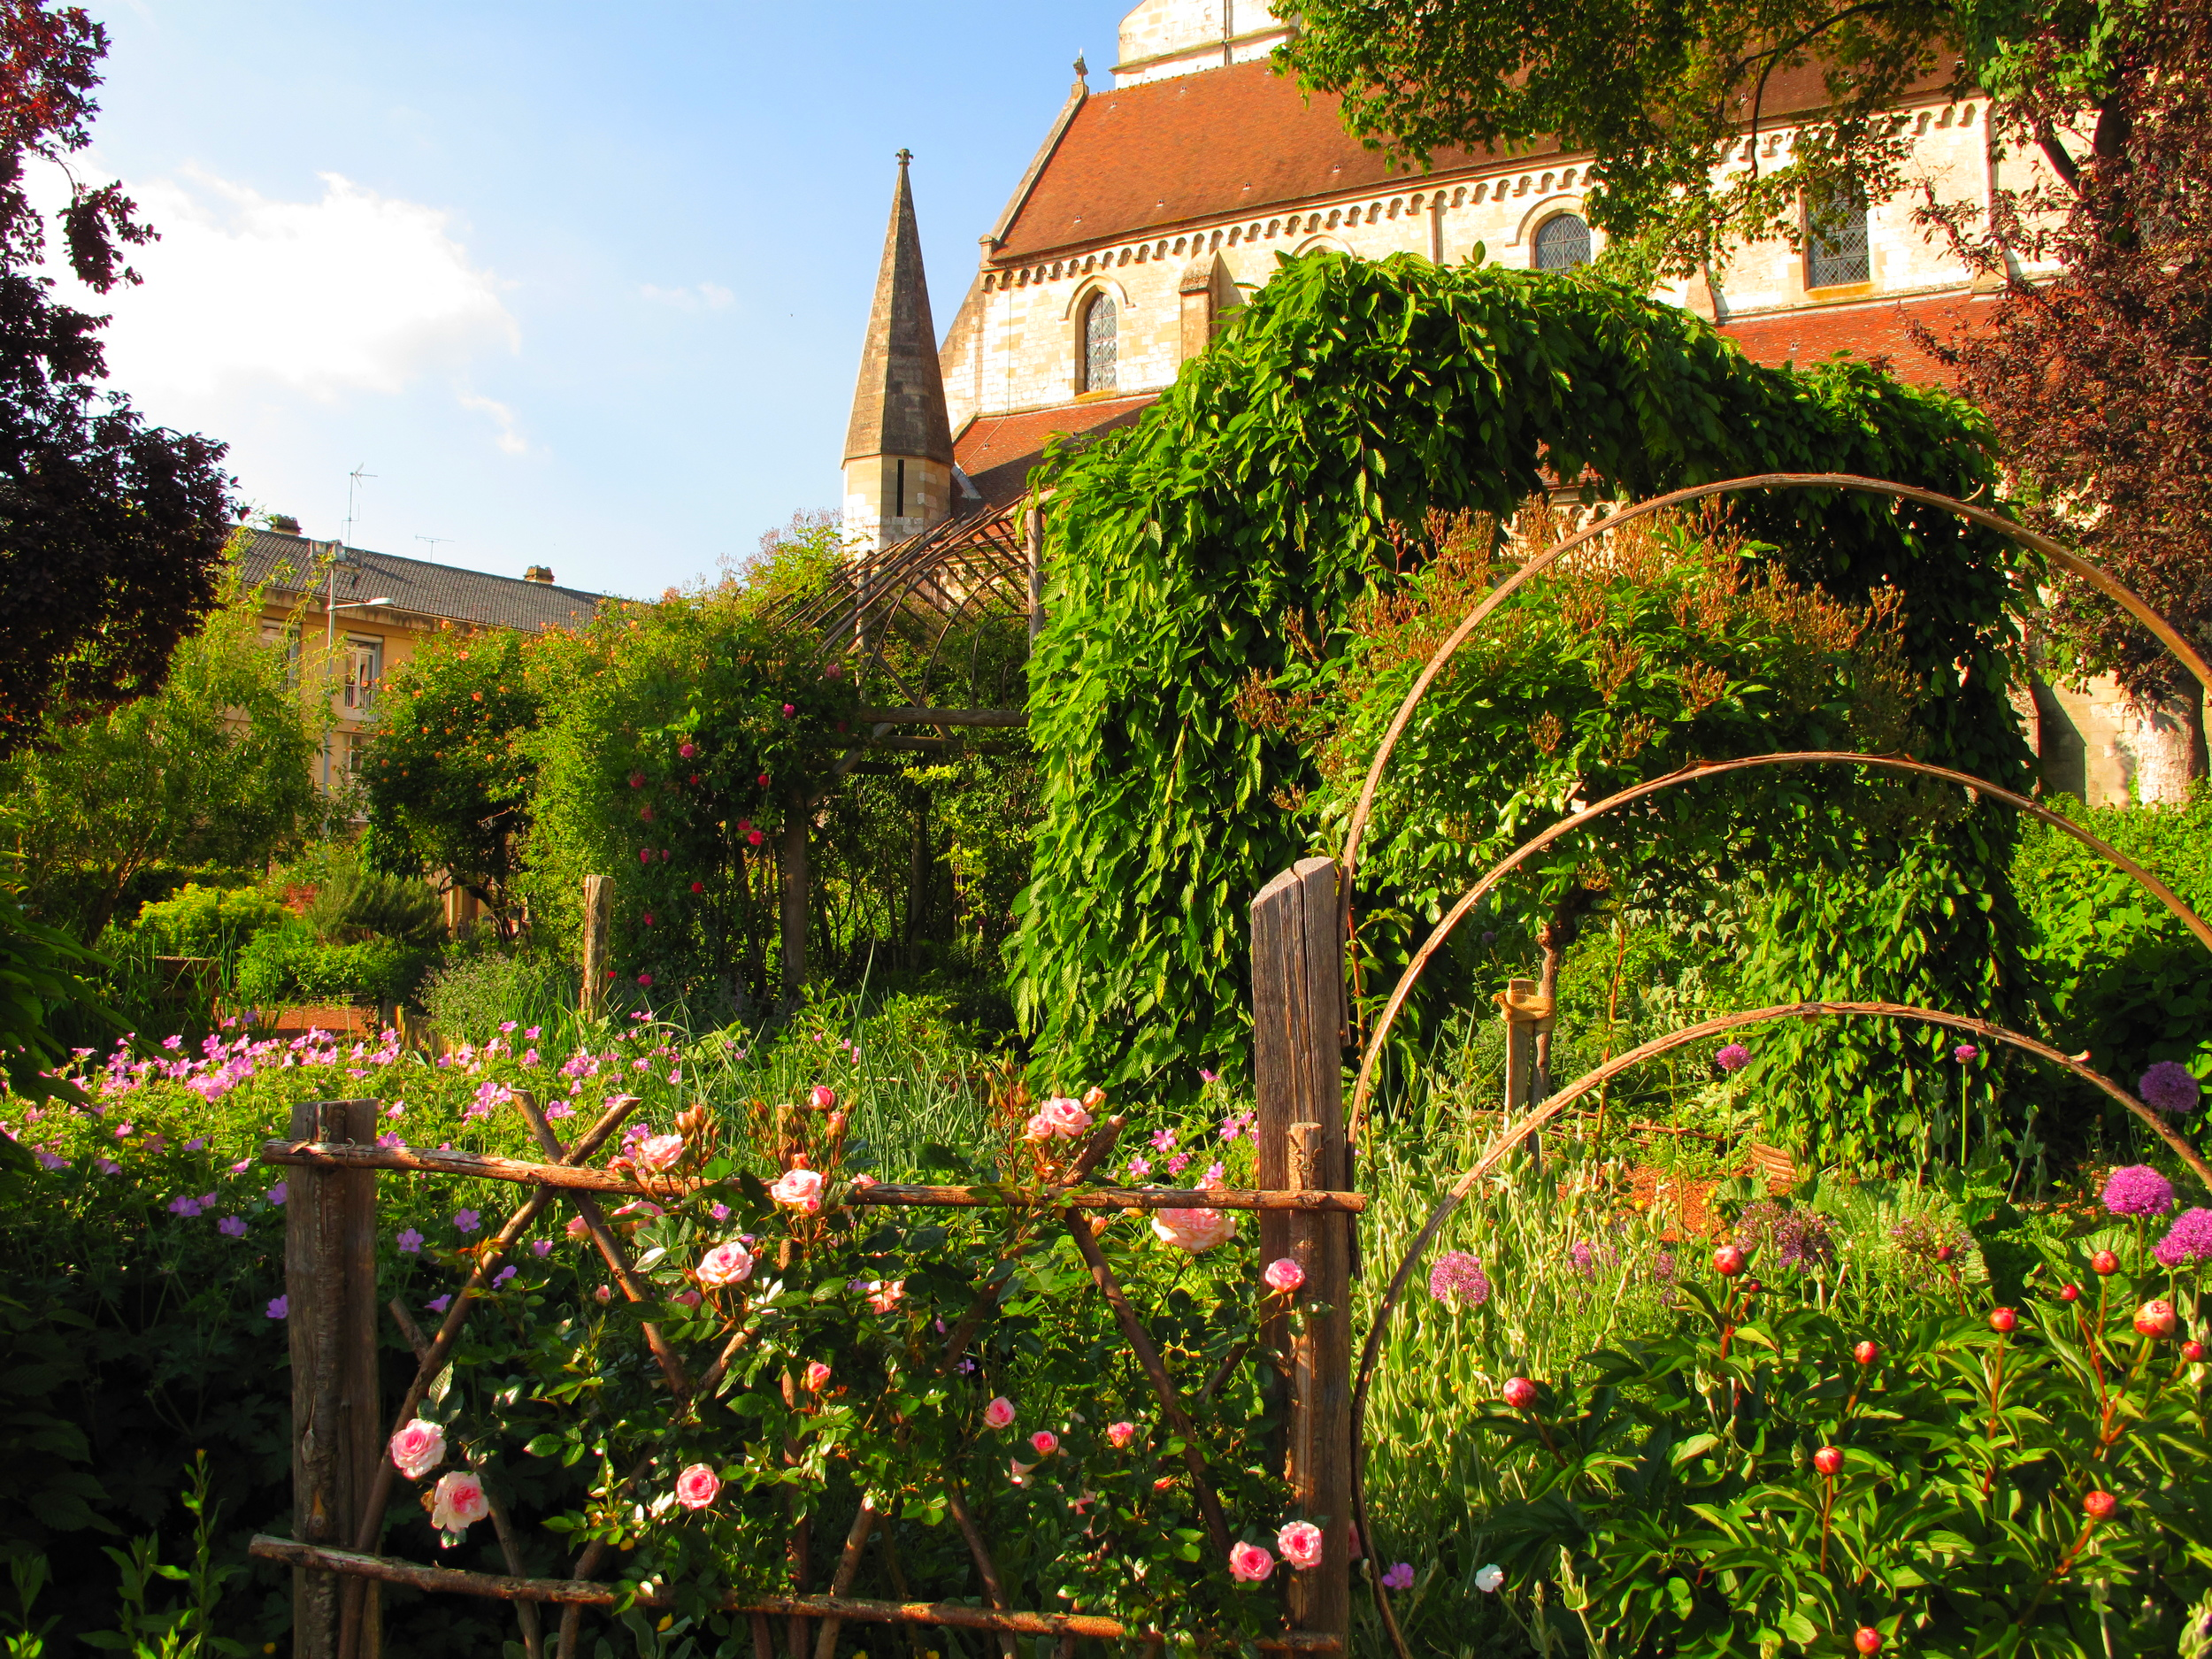 Old French garden of roses in a churchyard in Beauvais